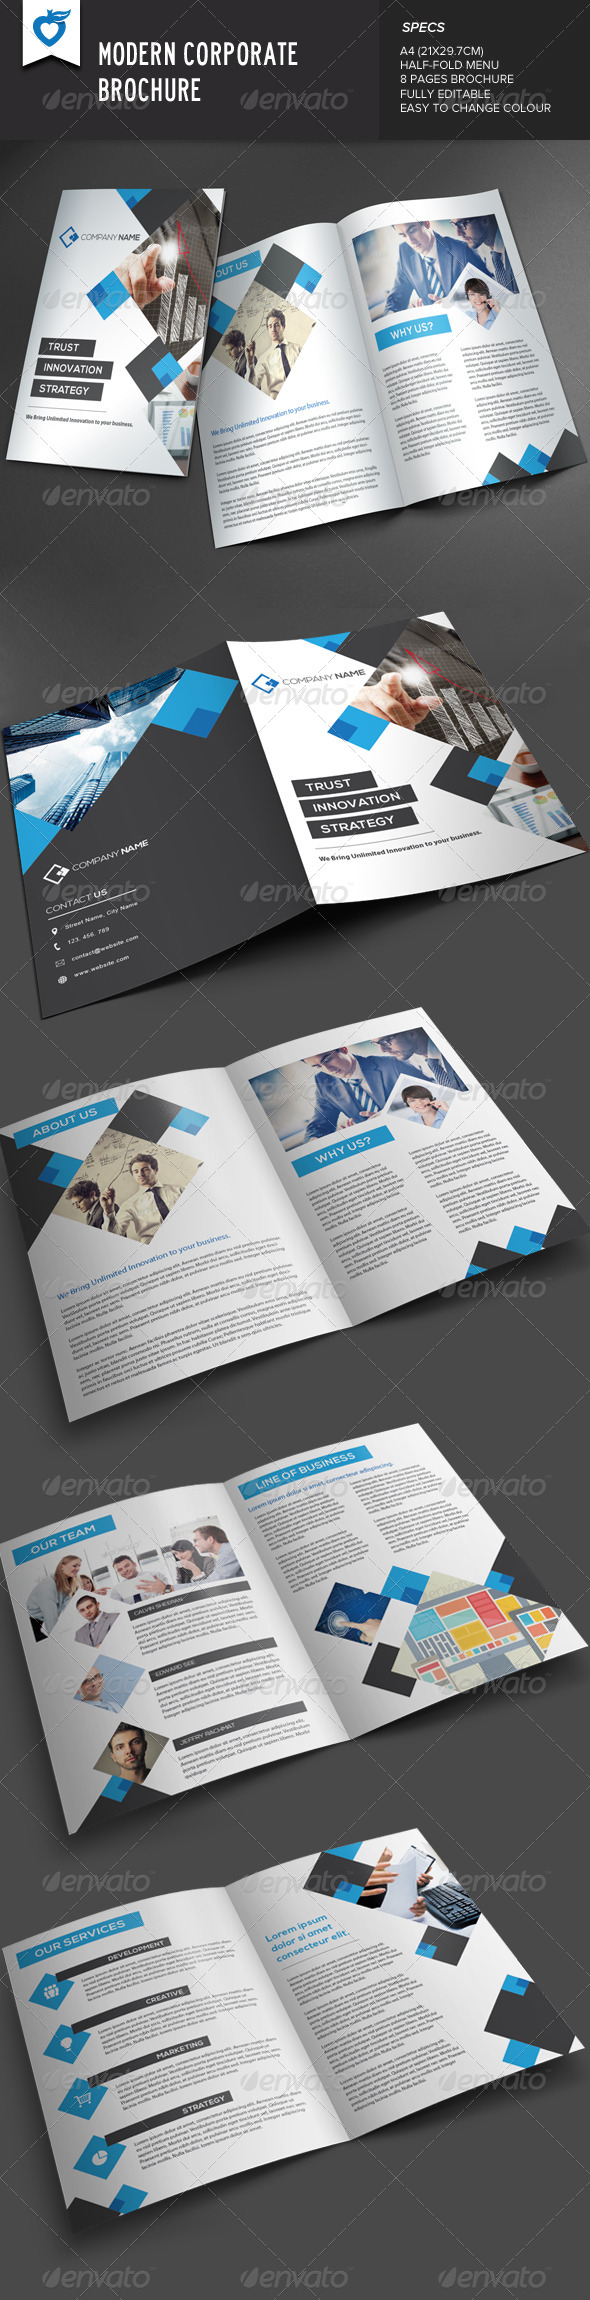 GraphicRiver Modern Corporate Brochure 7916598